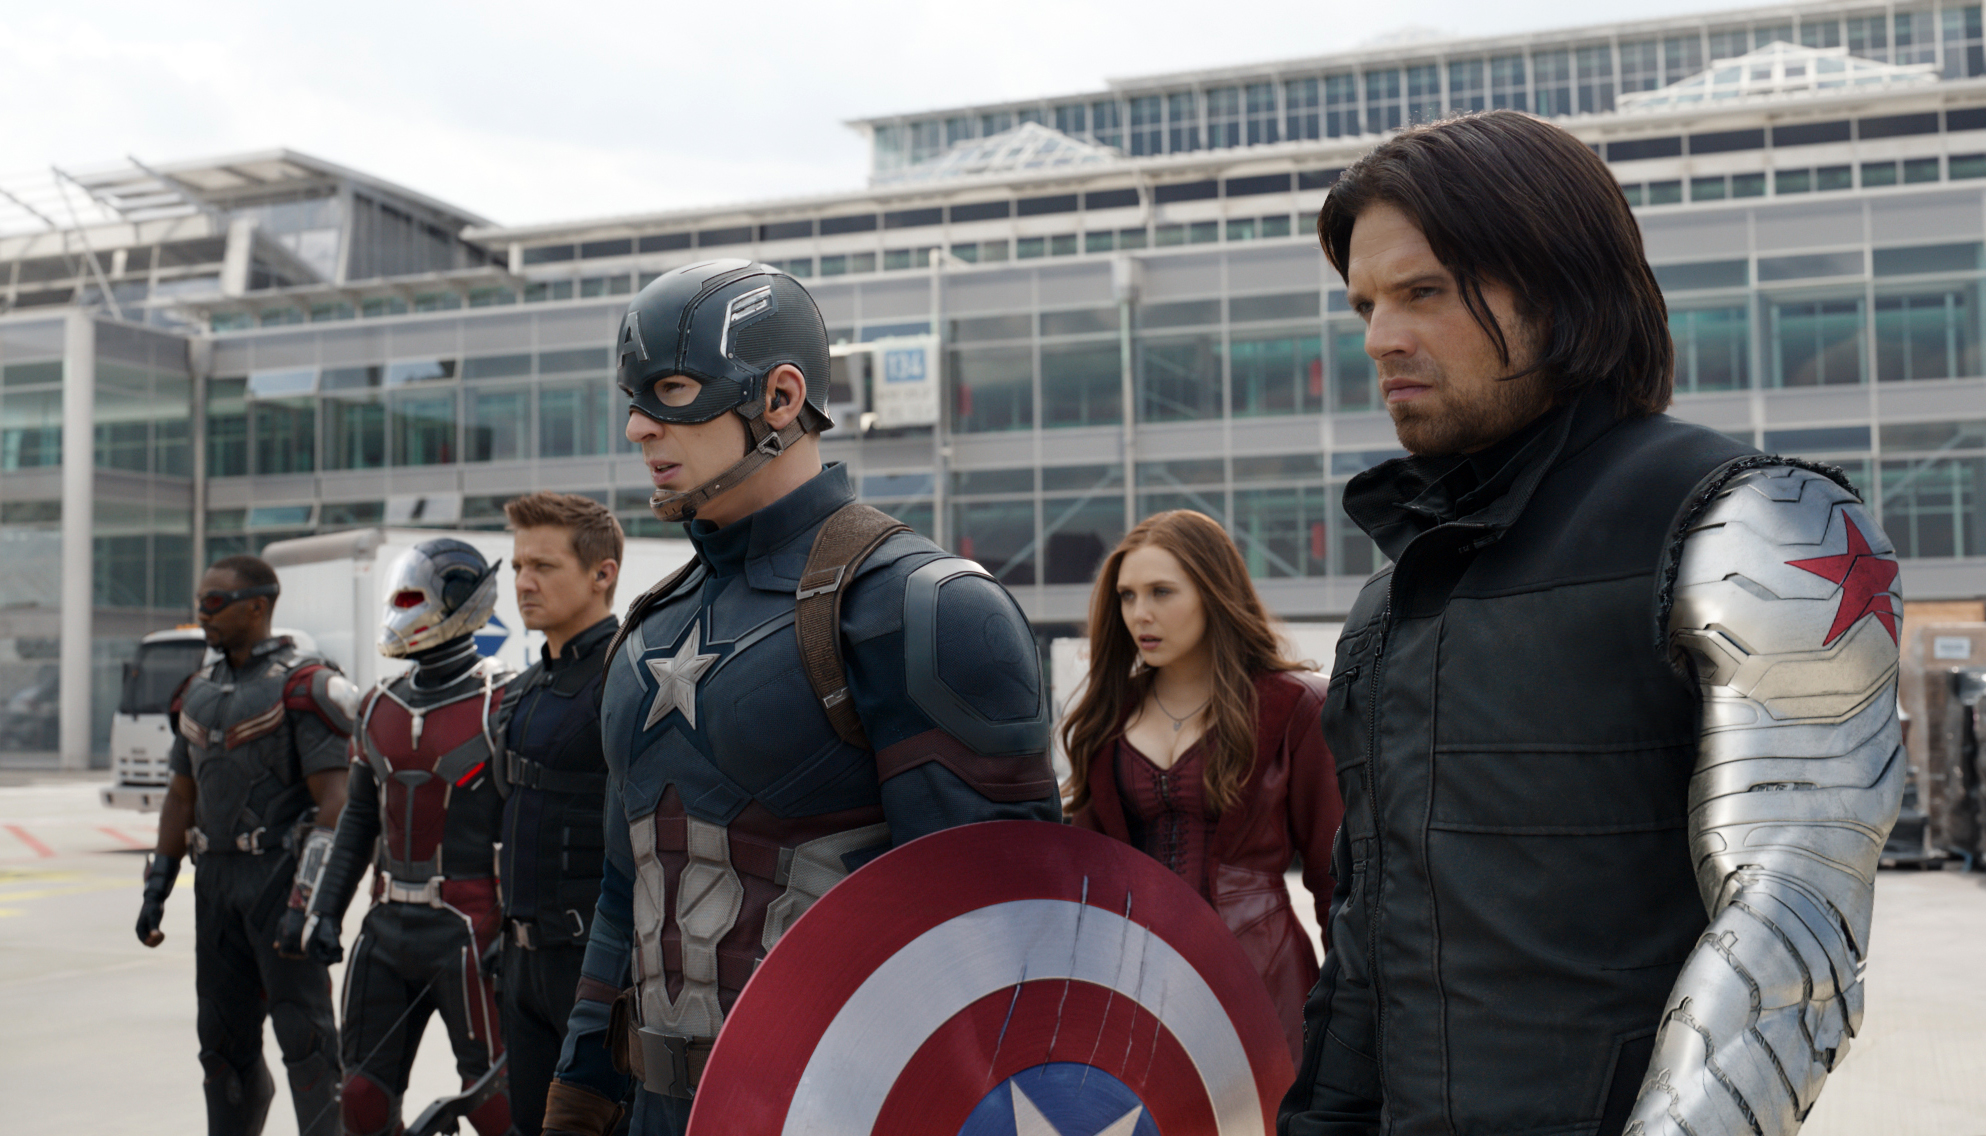 captain america civil war on screen projection